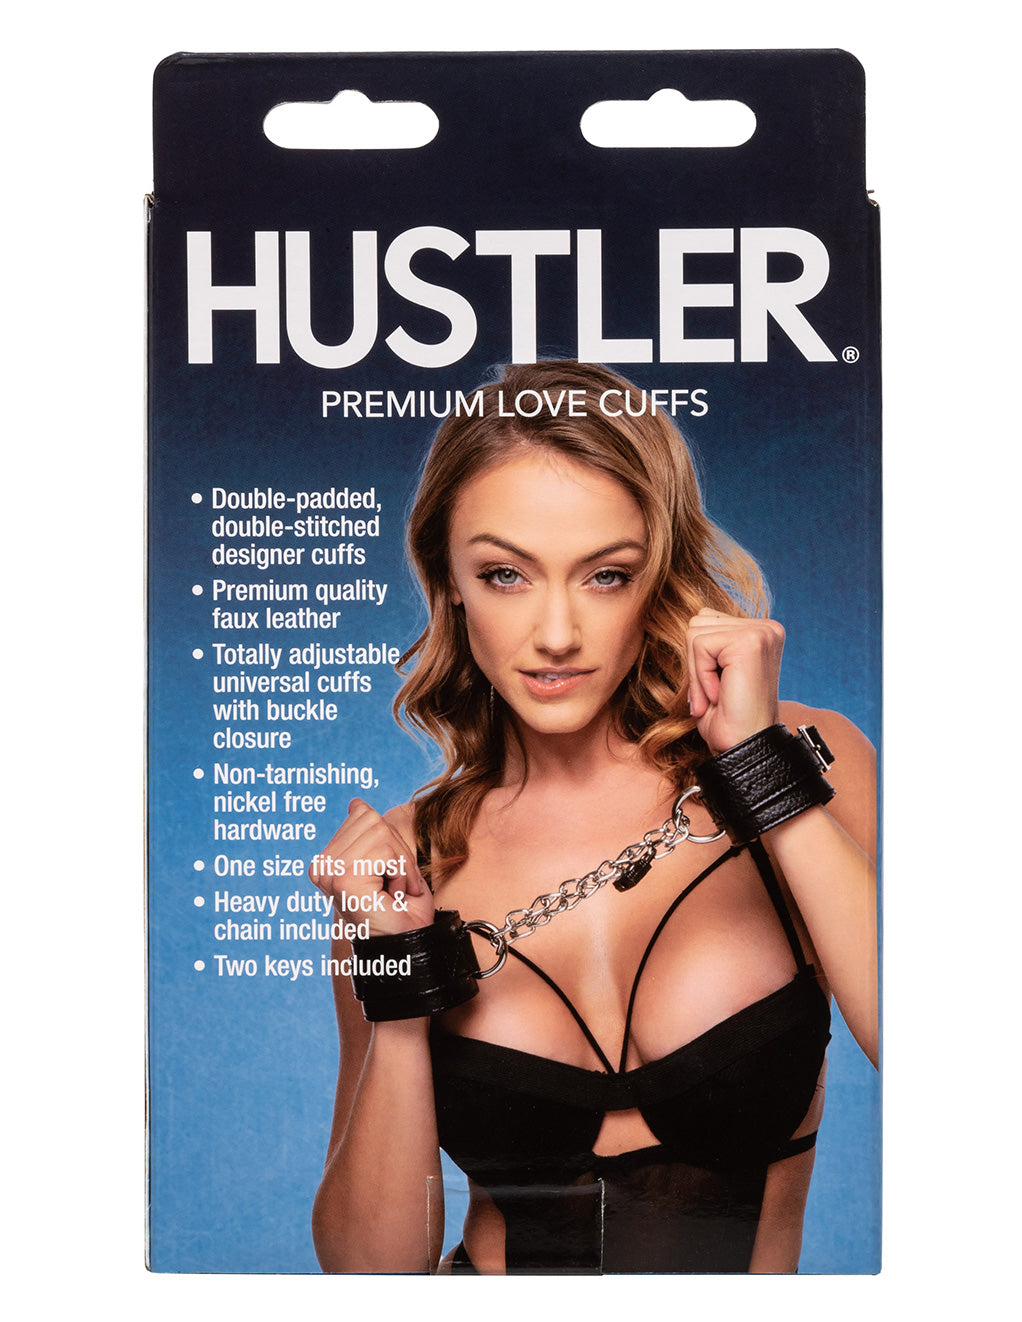 Hustler® Premium Love Cuffs- Back box